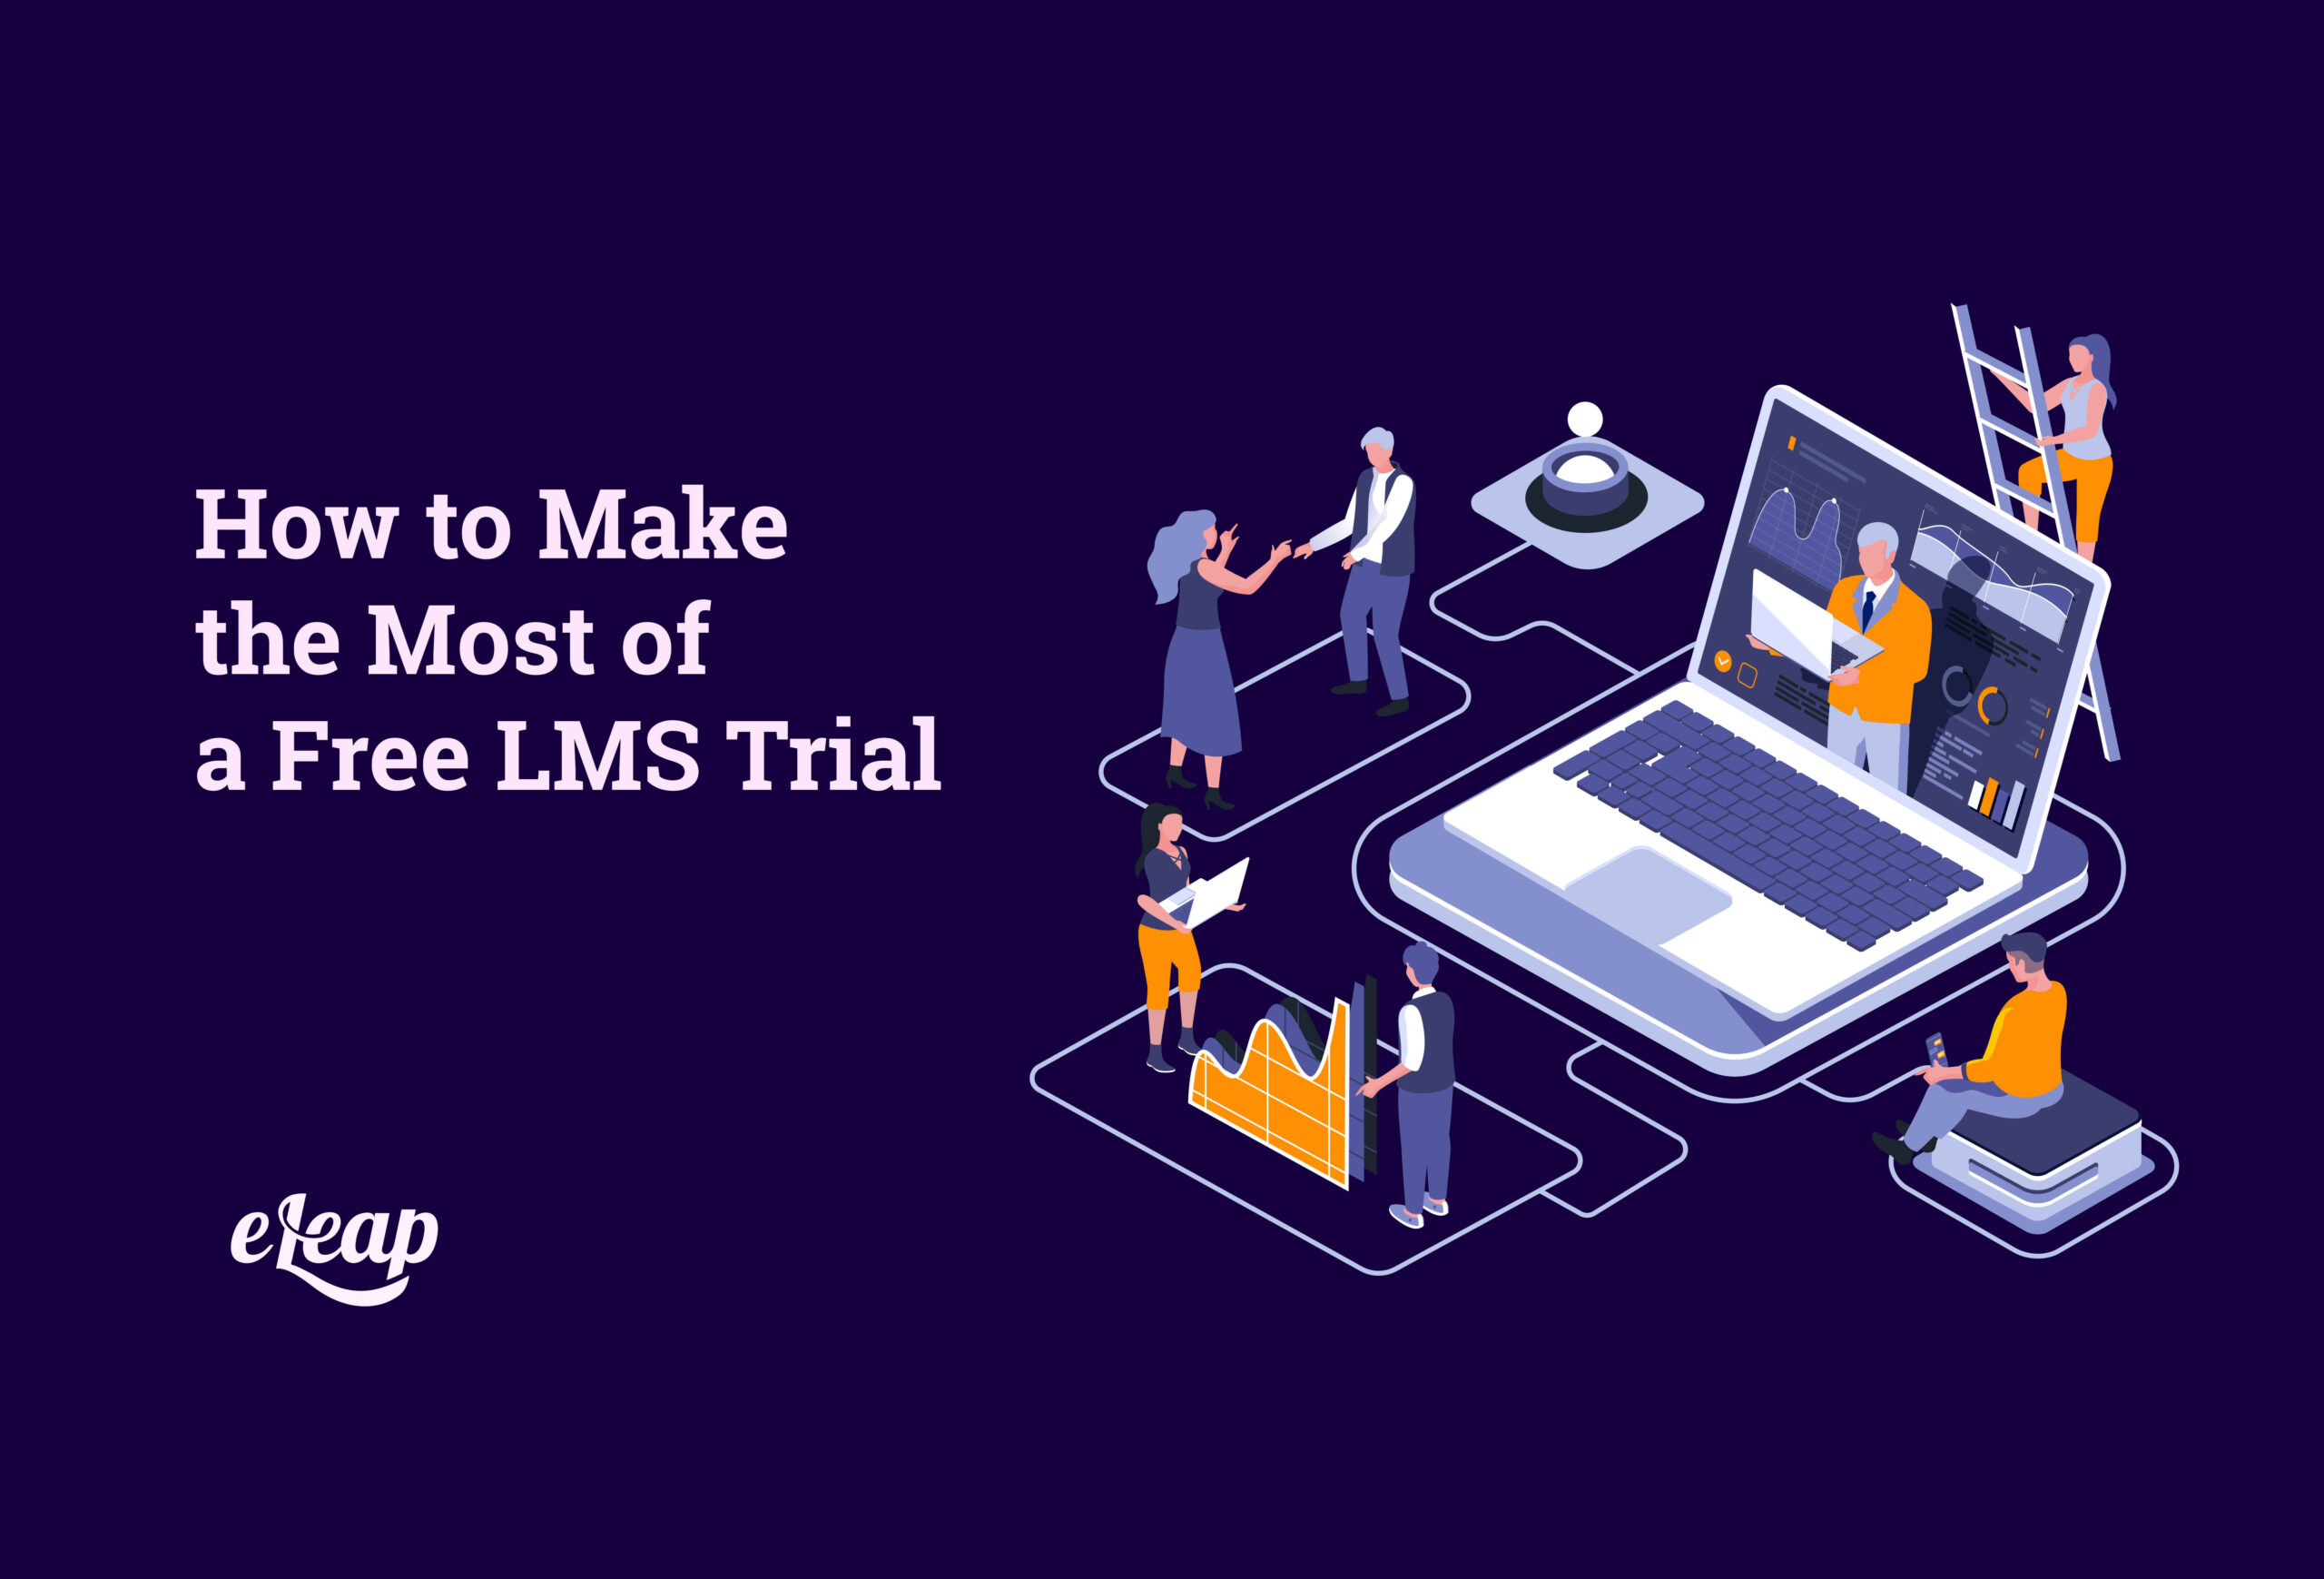 How to Make the Most of a Free LMS Trial